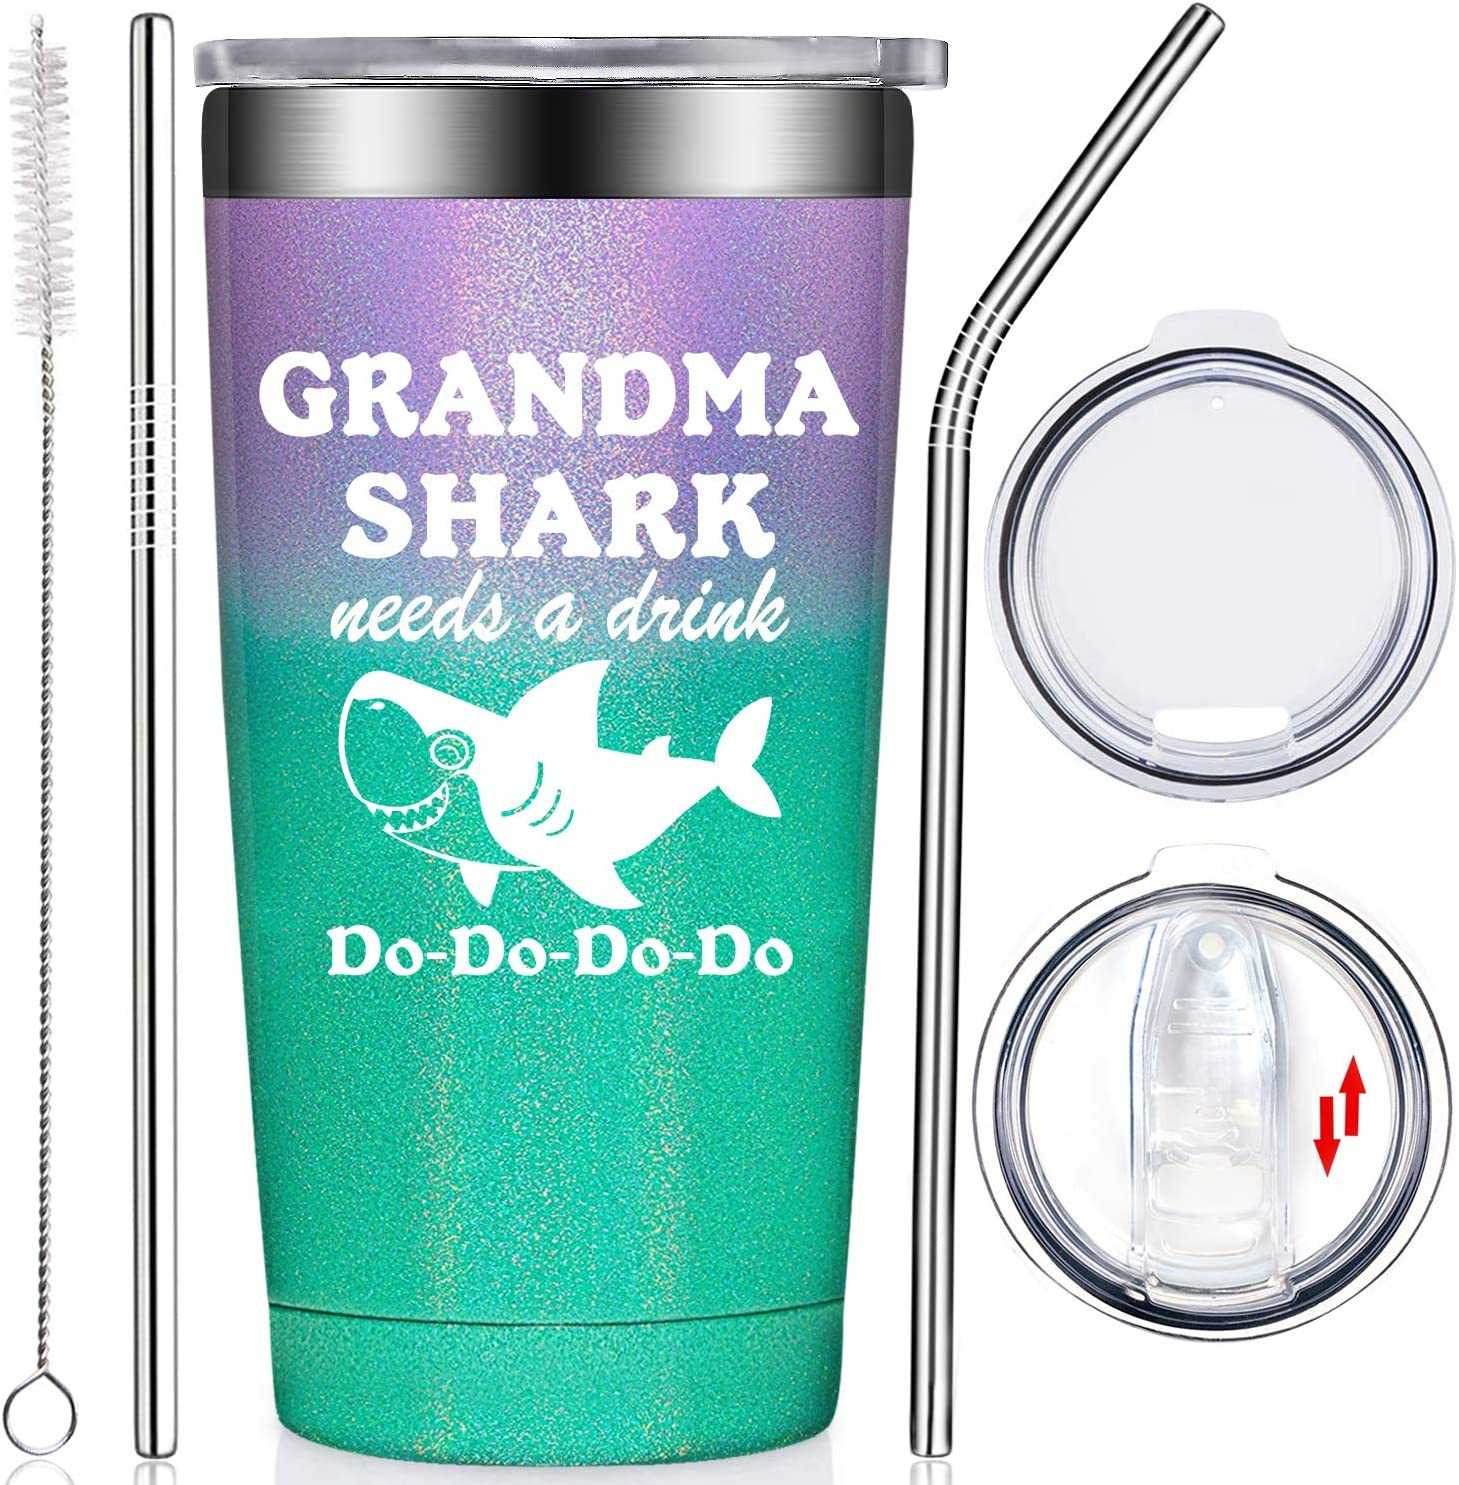 Fufendio Grandma Gifts from Granddaughter Grandson Grandchildren Grandkids - Grandma Shark Needs A Drink - Funny Mothers Day Great Grandma Birthday Present for Best New Grandmother Nana Mom Tumbler